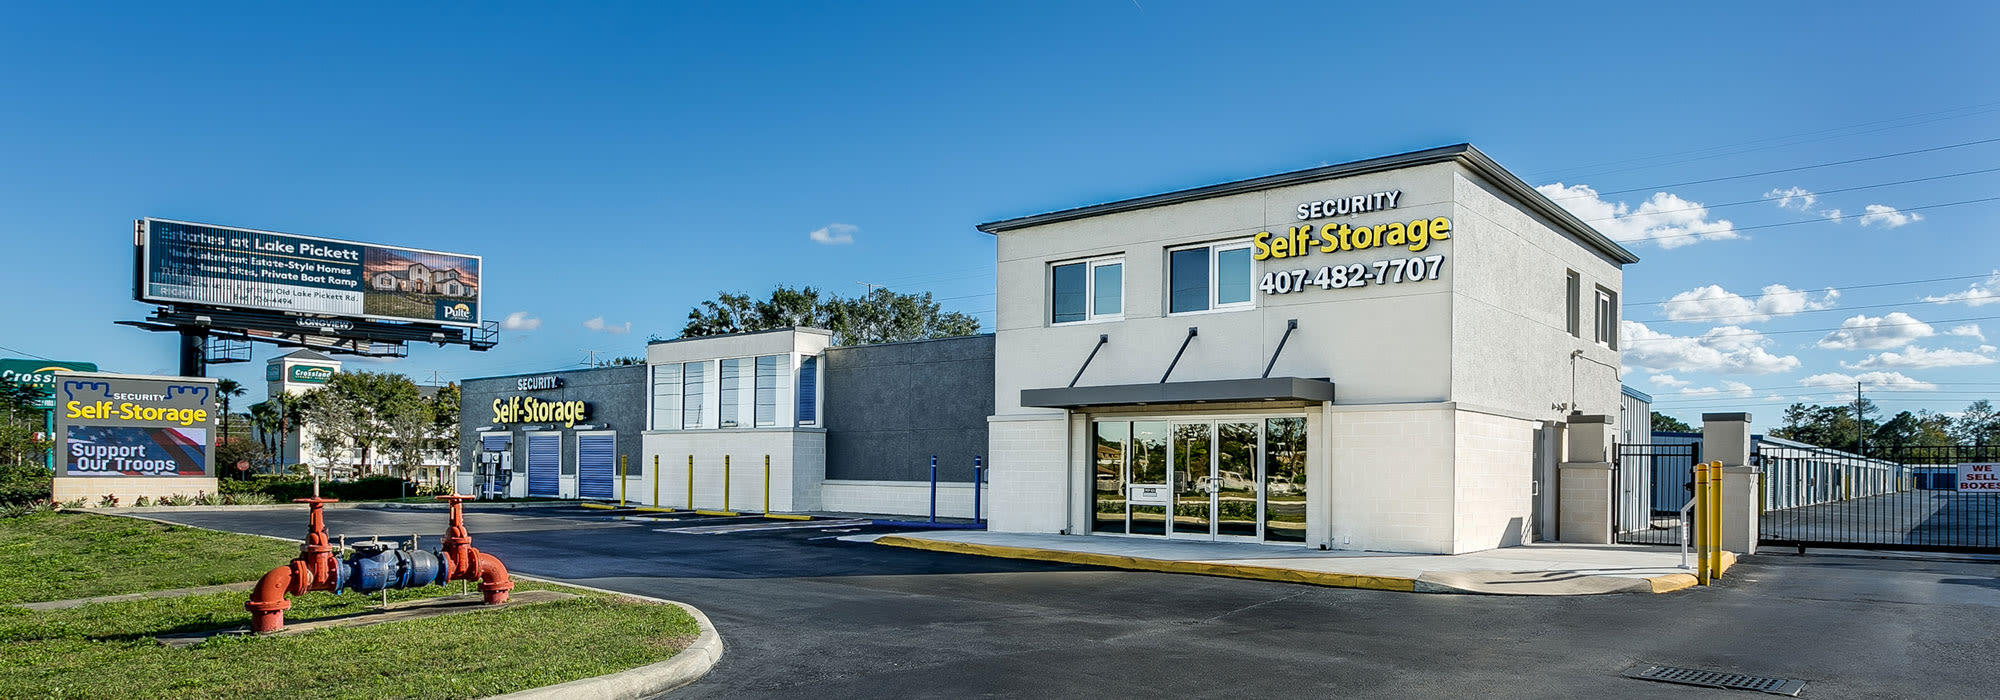 Self storage in Orlando FL